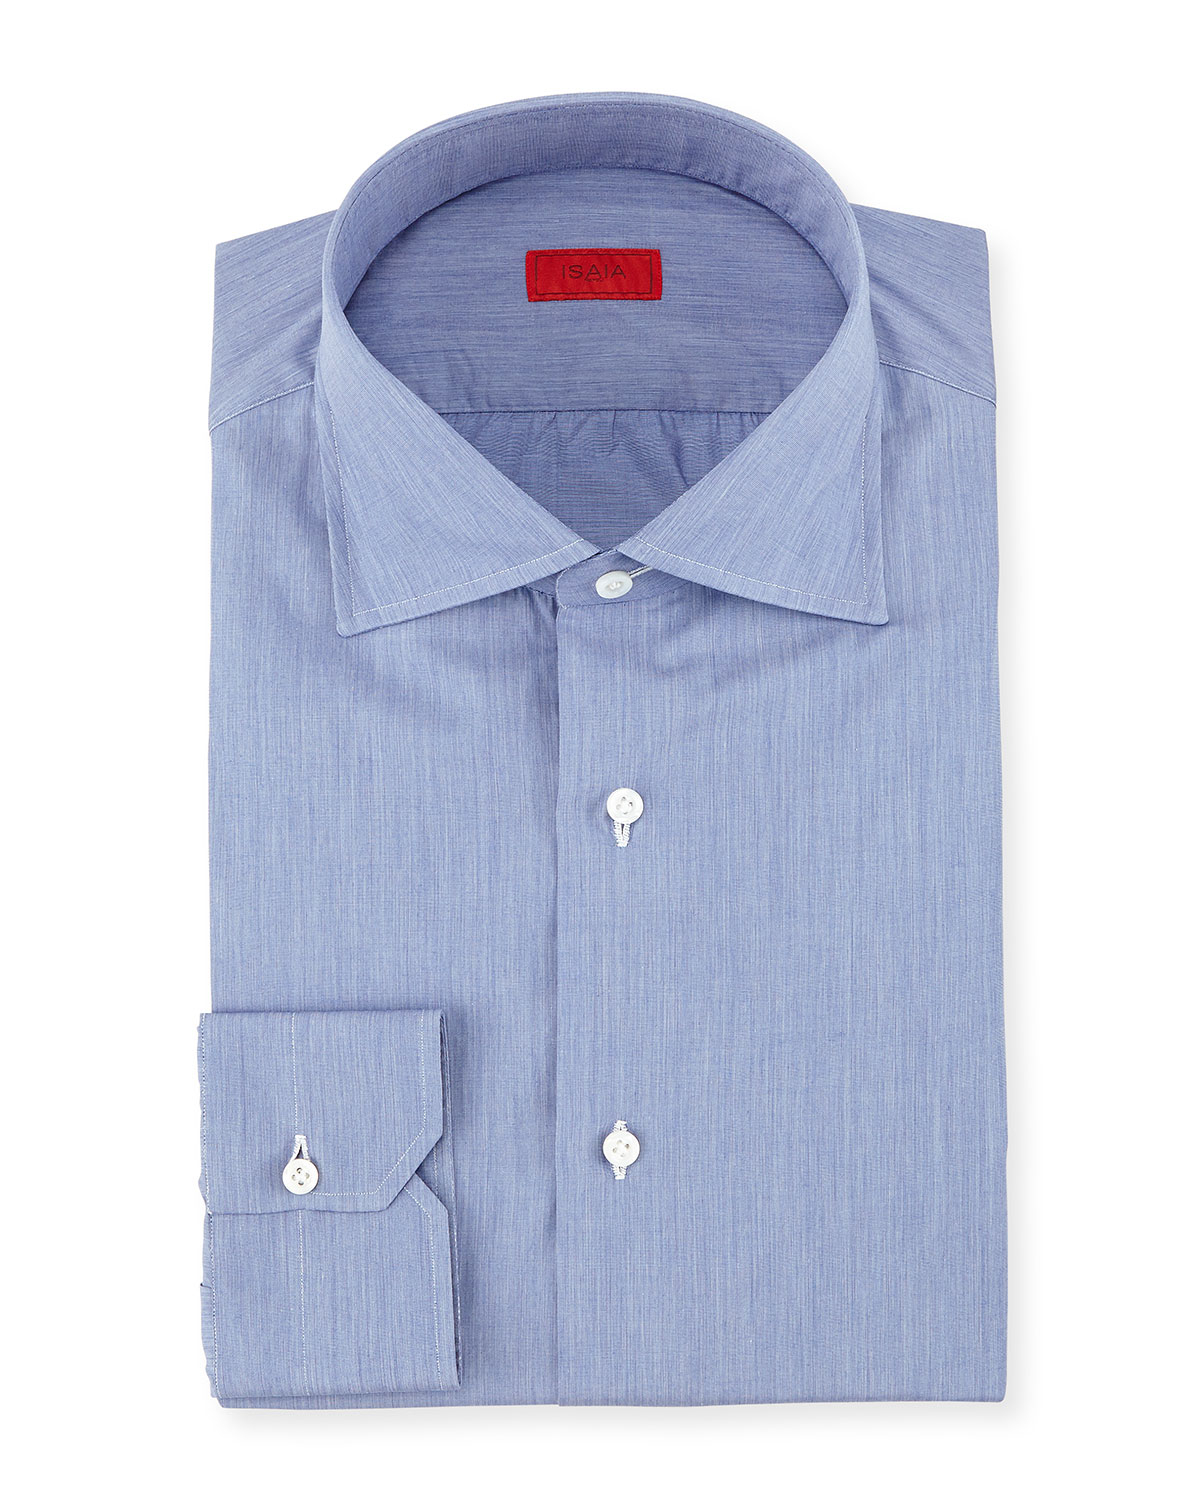 isaia solid chambray woven dress shirt in blue for men lyst